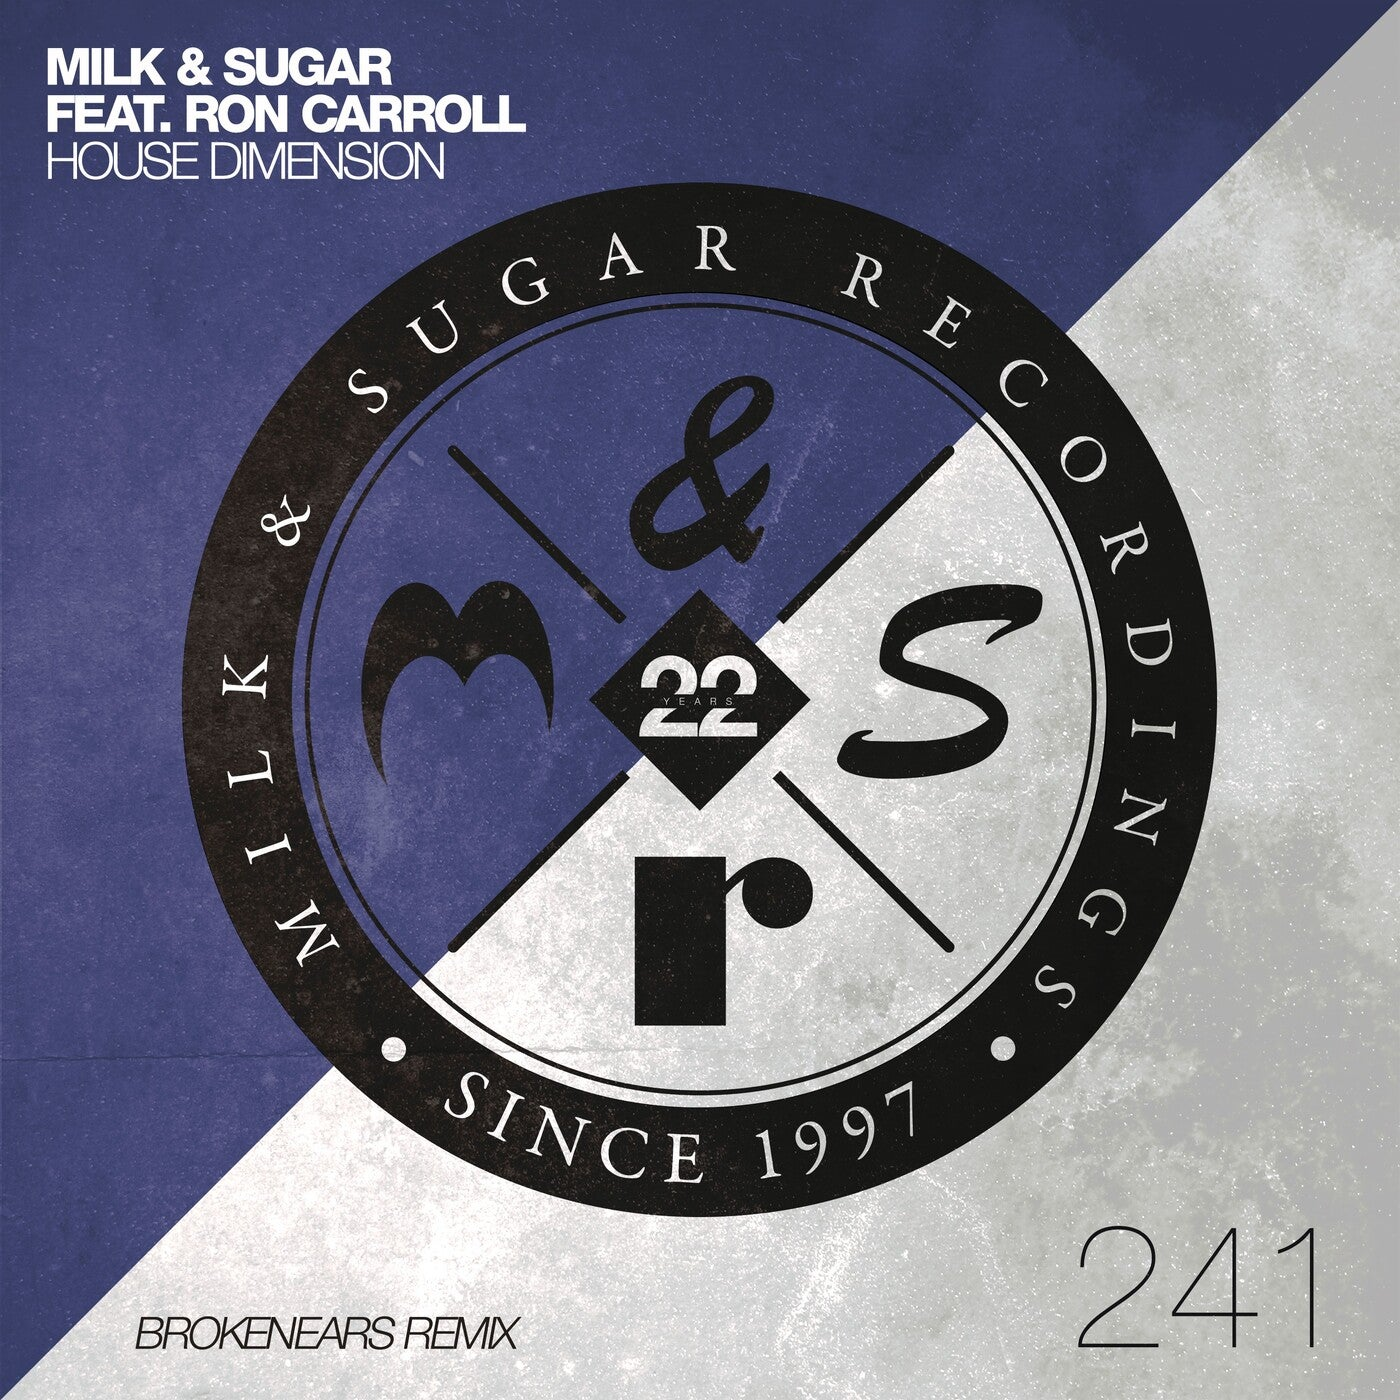 House Dimension feat. Ron Carroll (Brokenears Extended Remix)